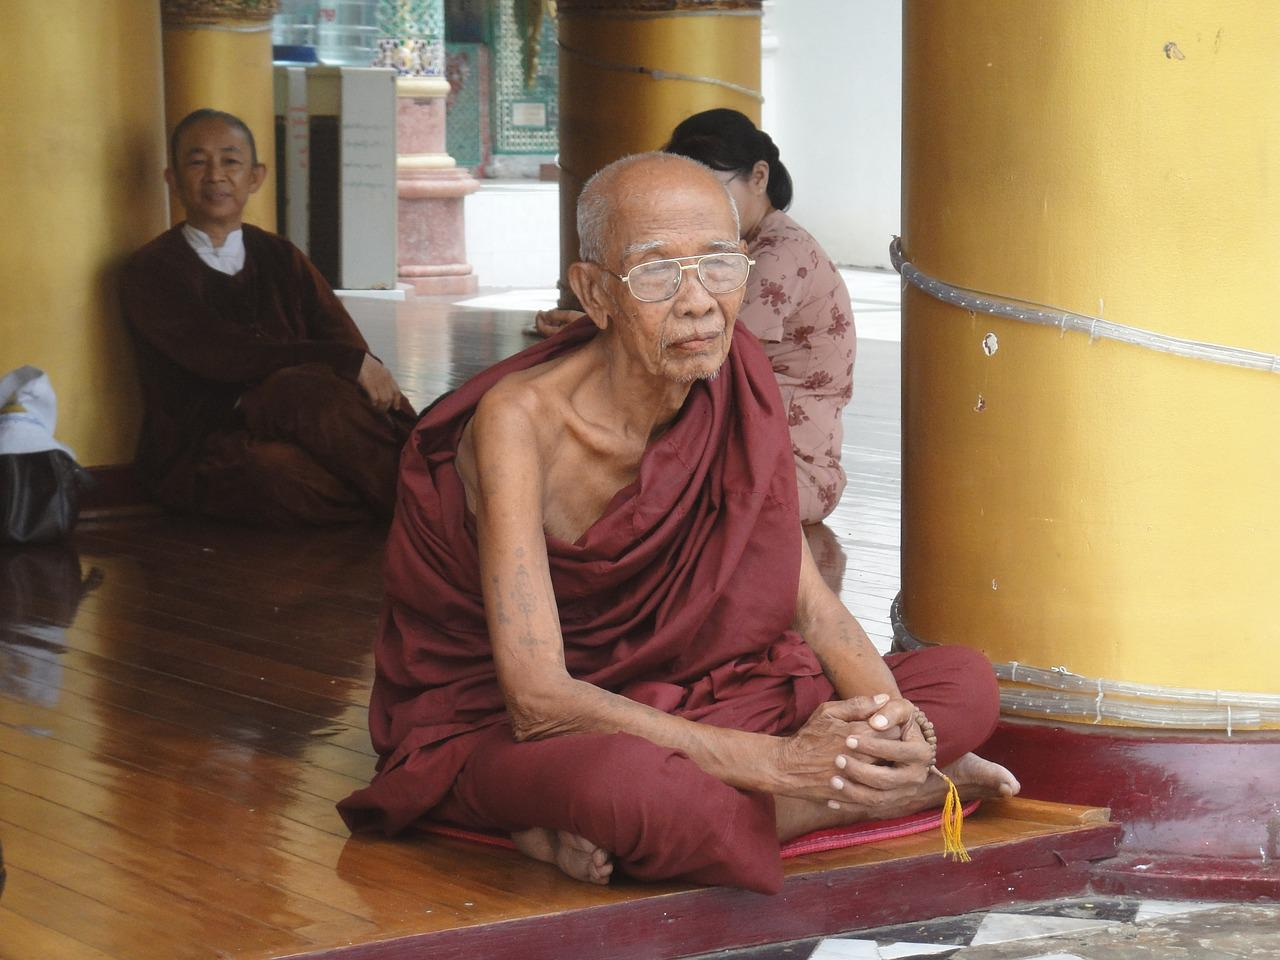 burma religion burma essay Burma religion (burma) mark joseph magdalaga since the myanmar ancient times, there has been full freedom of worship for followers of burma religions in myanmar so many different religions can be practiced in myanmar.